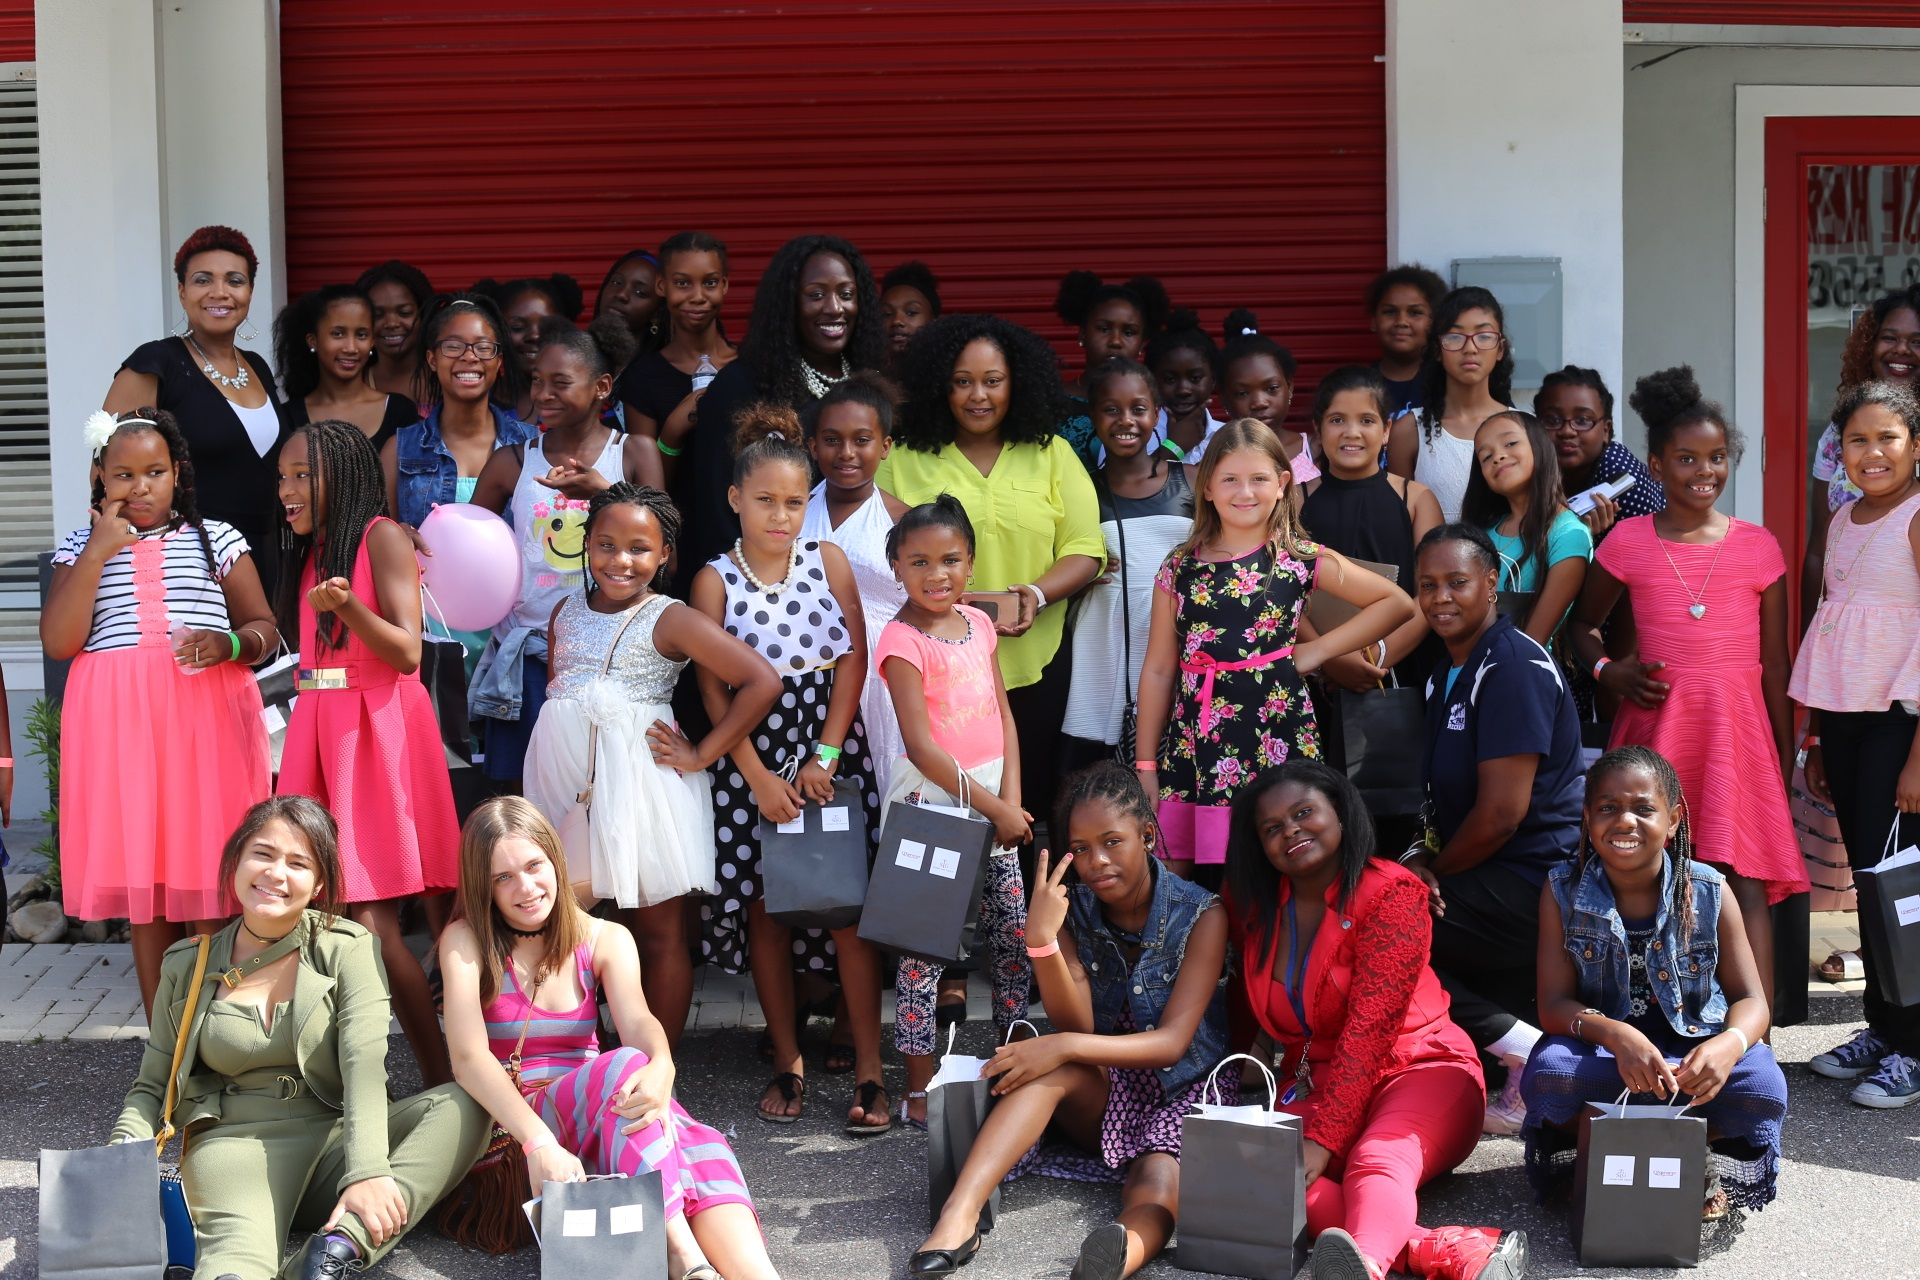 'Building A Boss' Workshop Inspired 40 Girls To Pursue Their Dreams